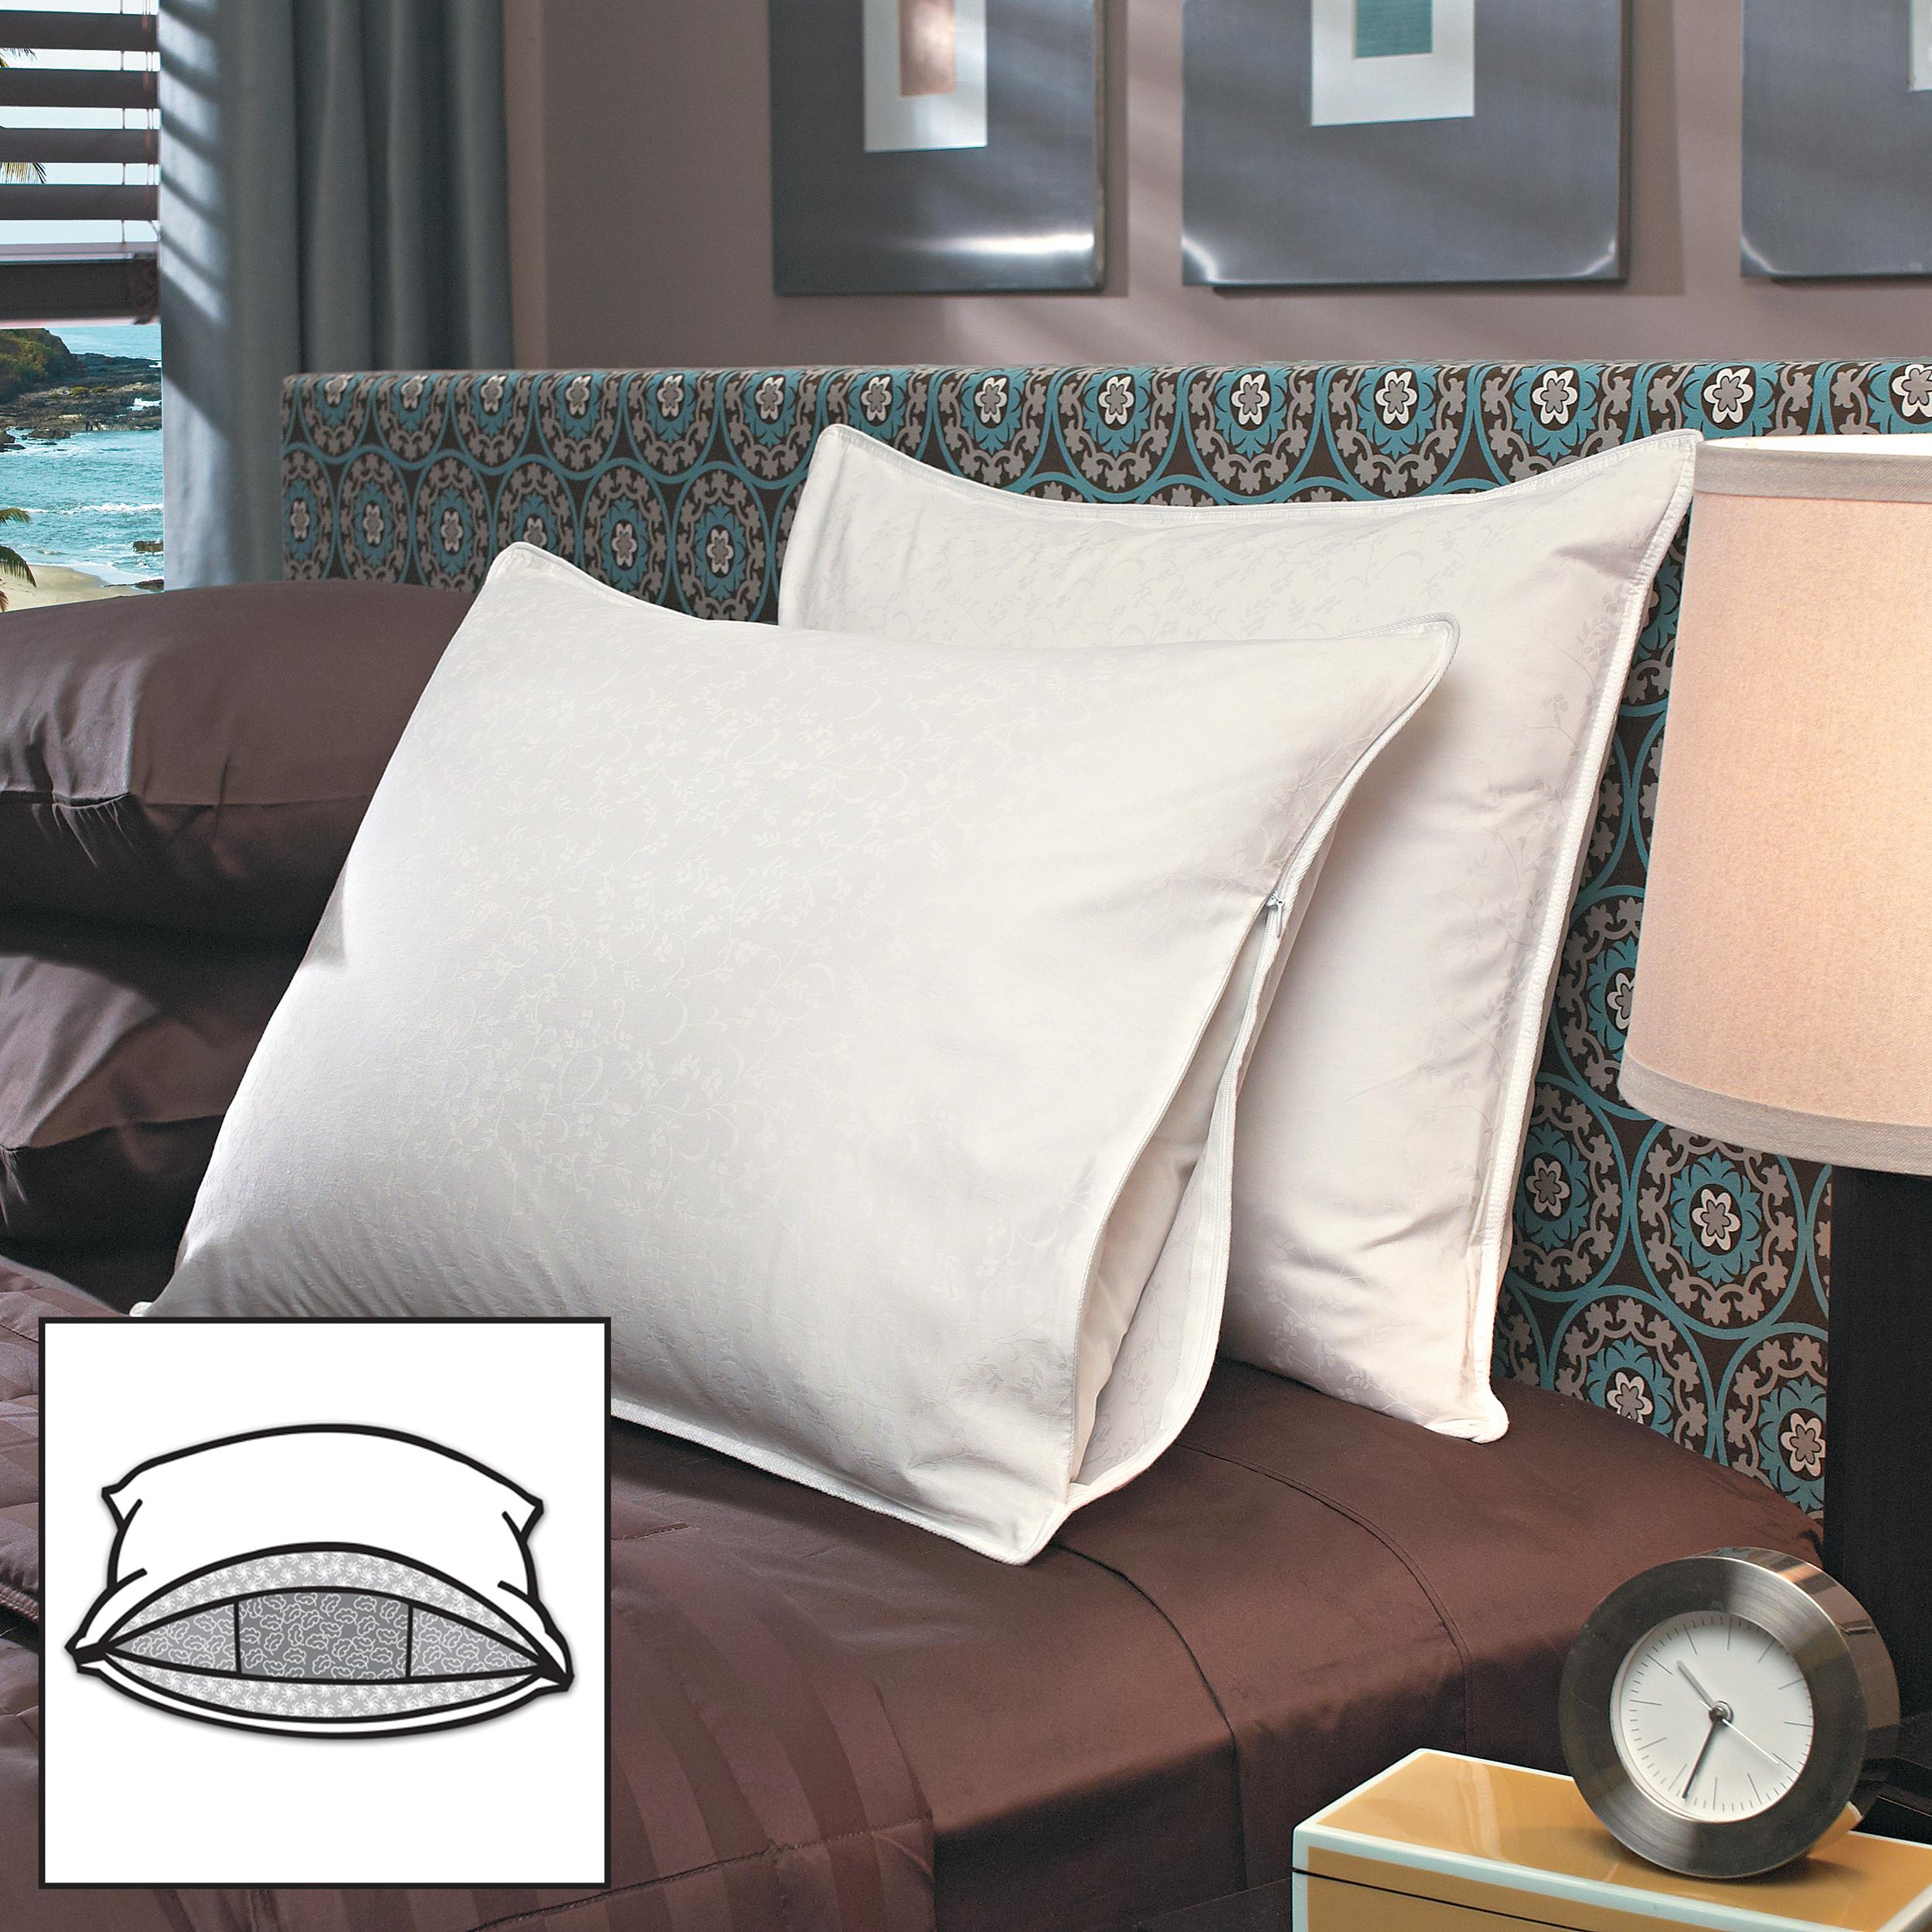 Famous Maker Luxury All-down High Loft Chamber Pillows with Protective Zip Covers (Set of 2)